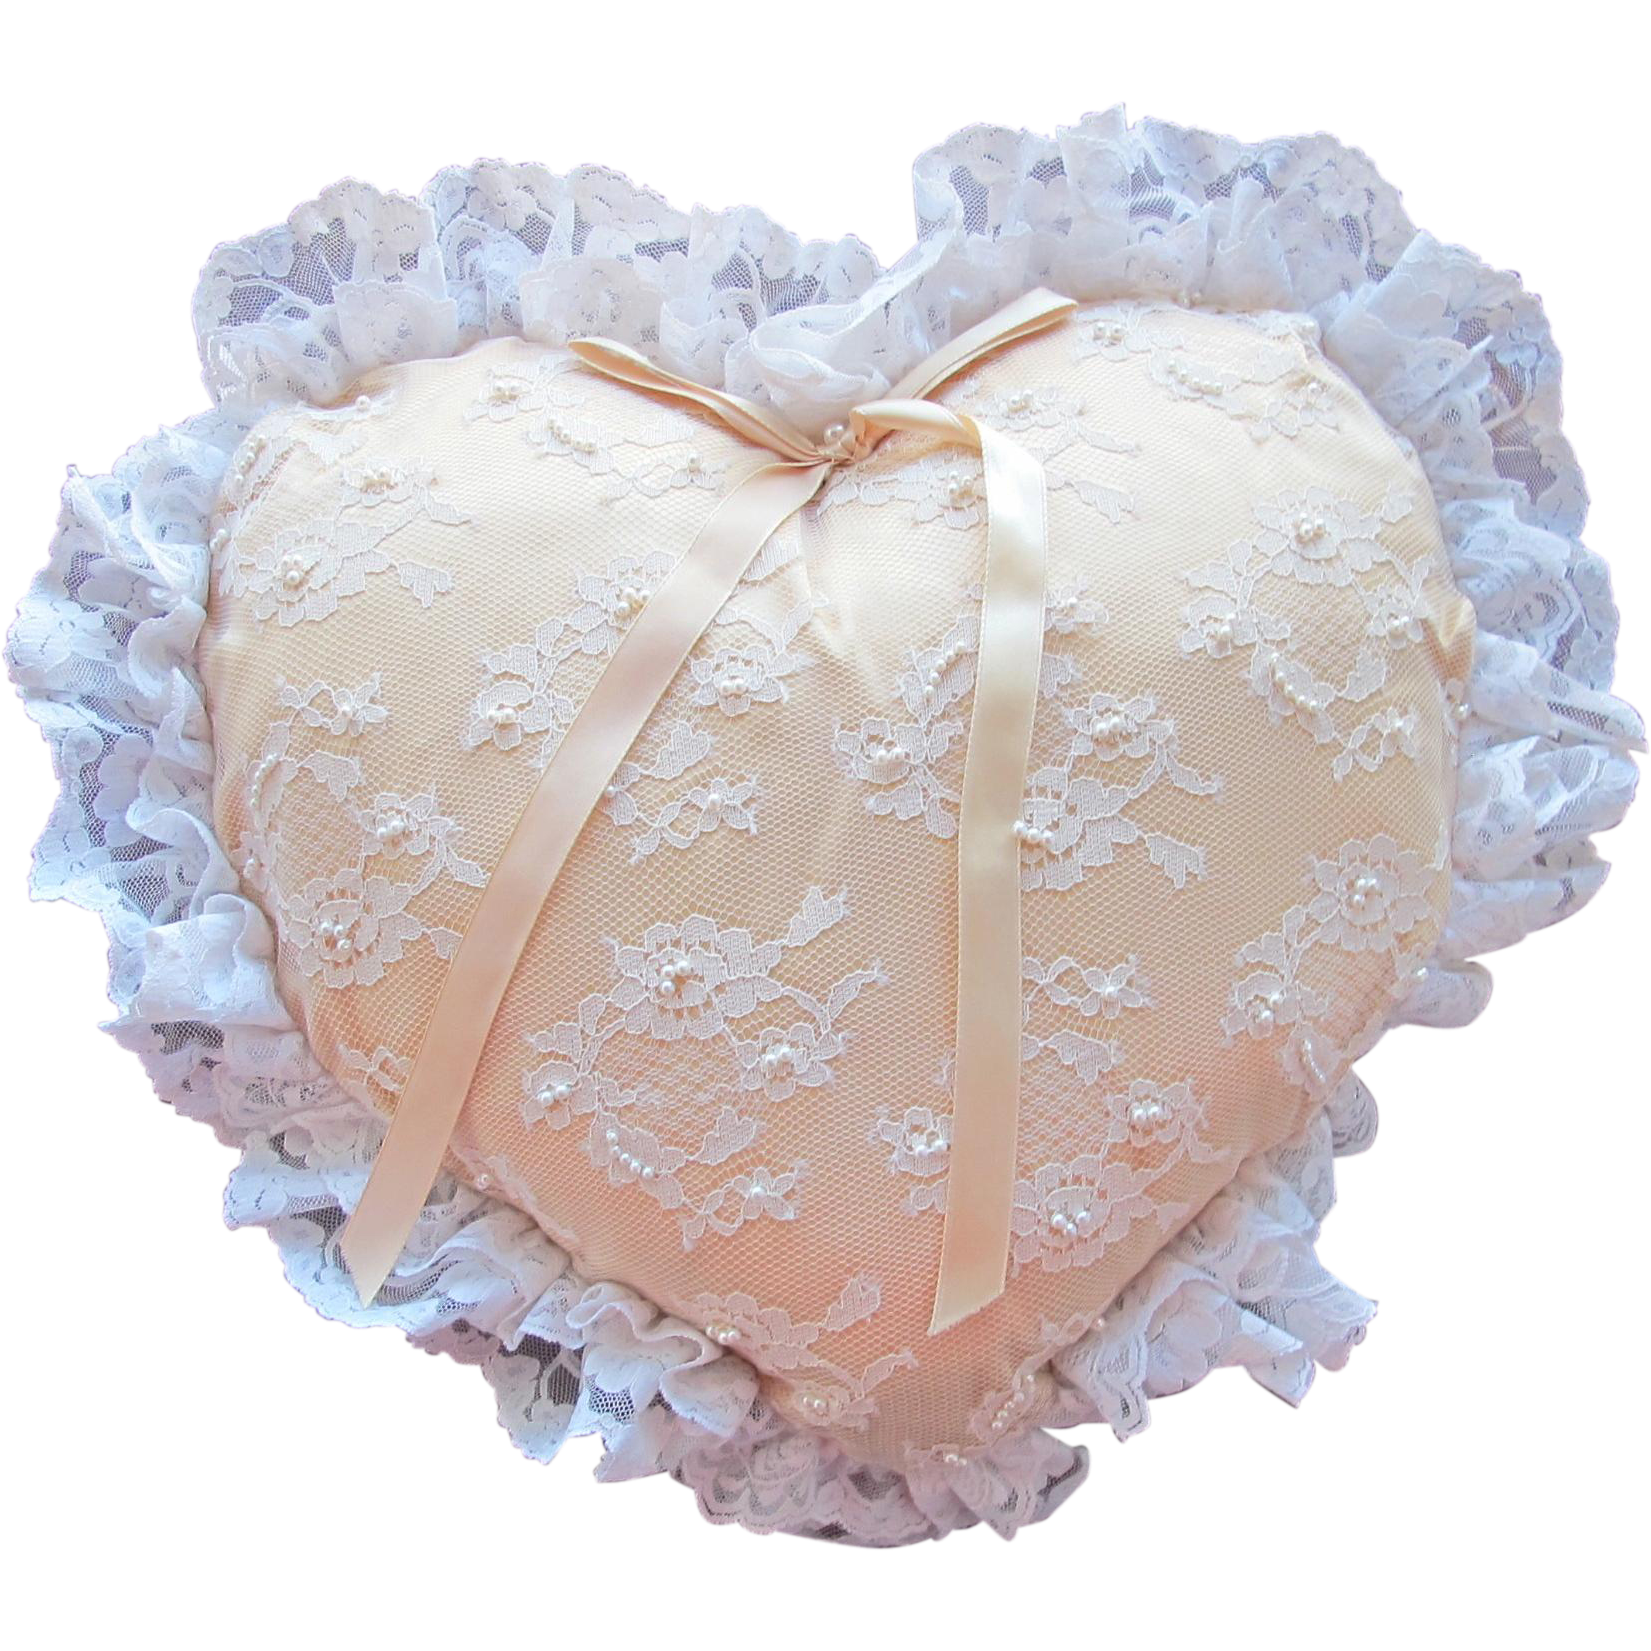 Heart Pillow for Wedding Ring Barer or Decoration in Satin Lace and Pearl Beading